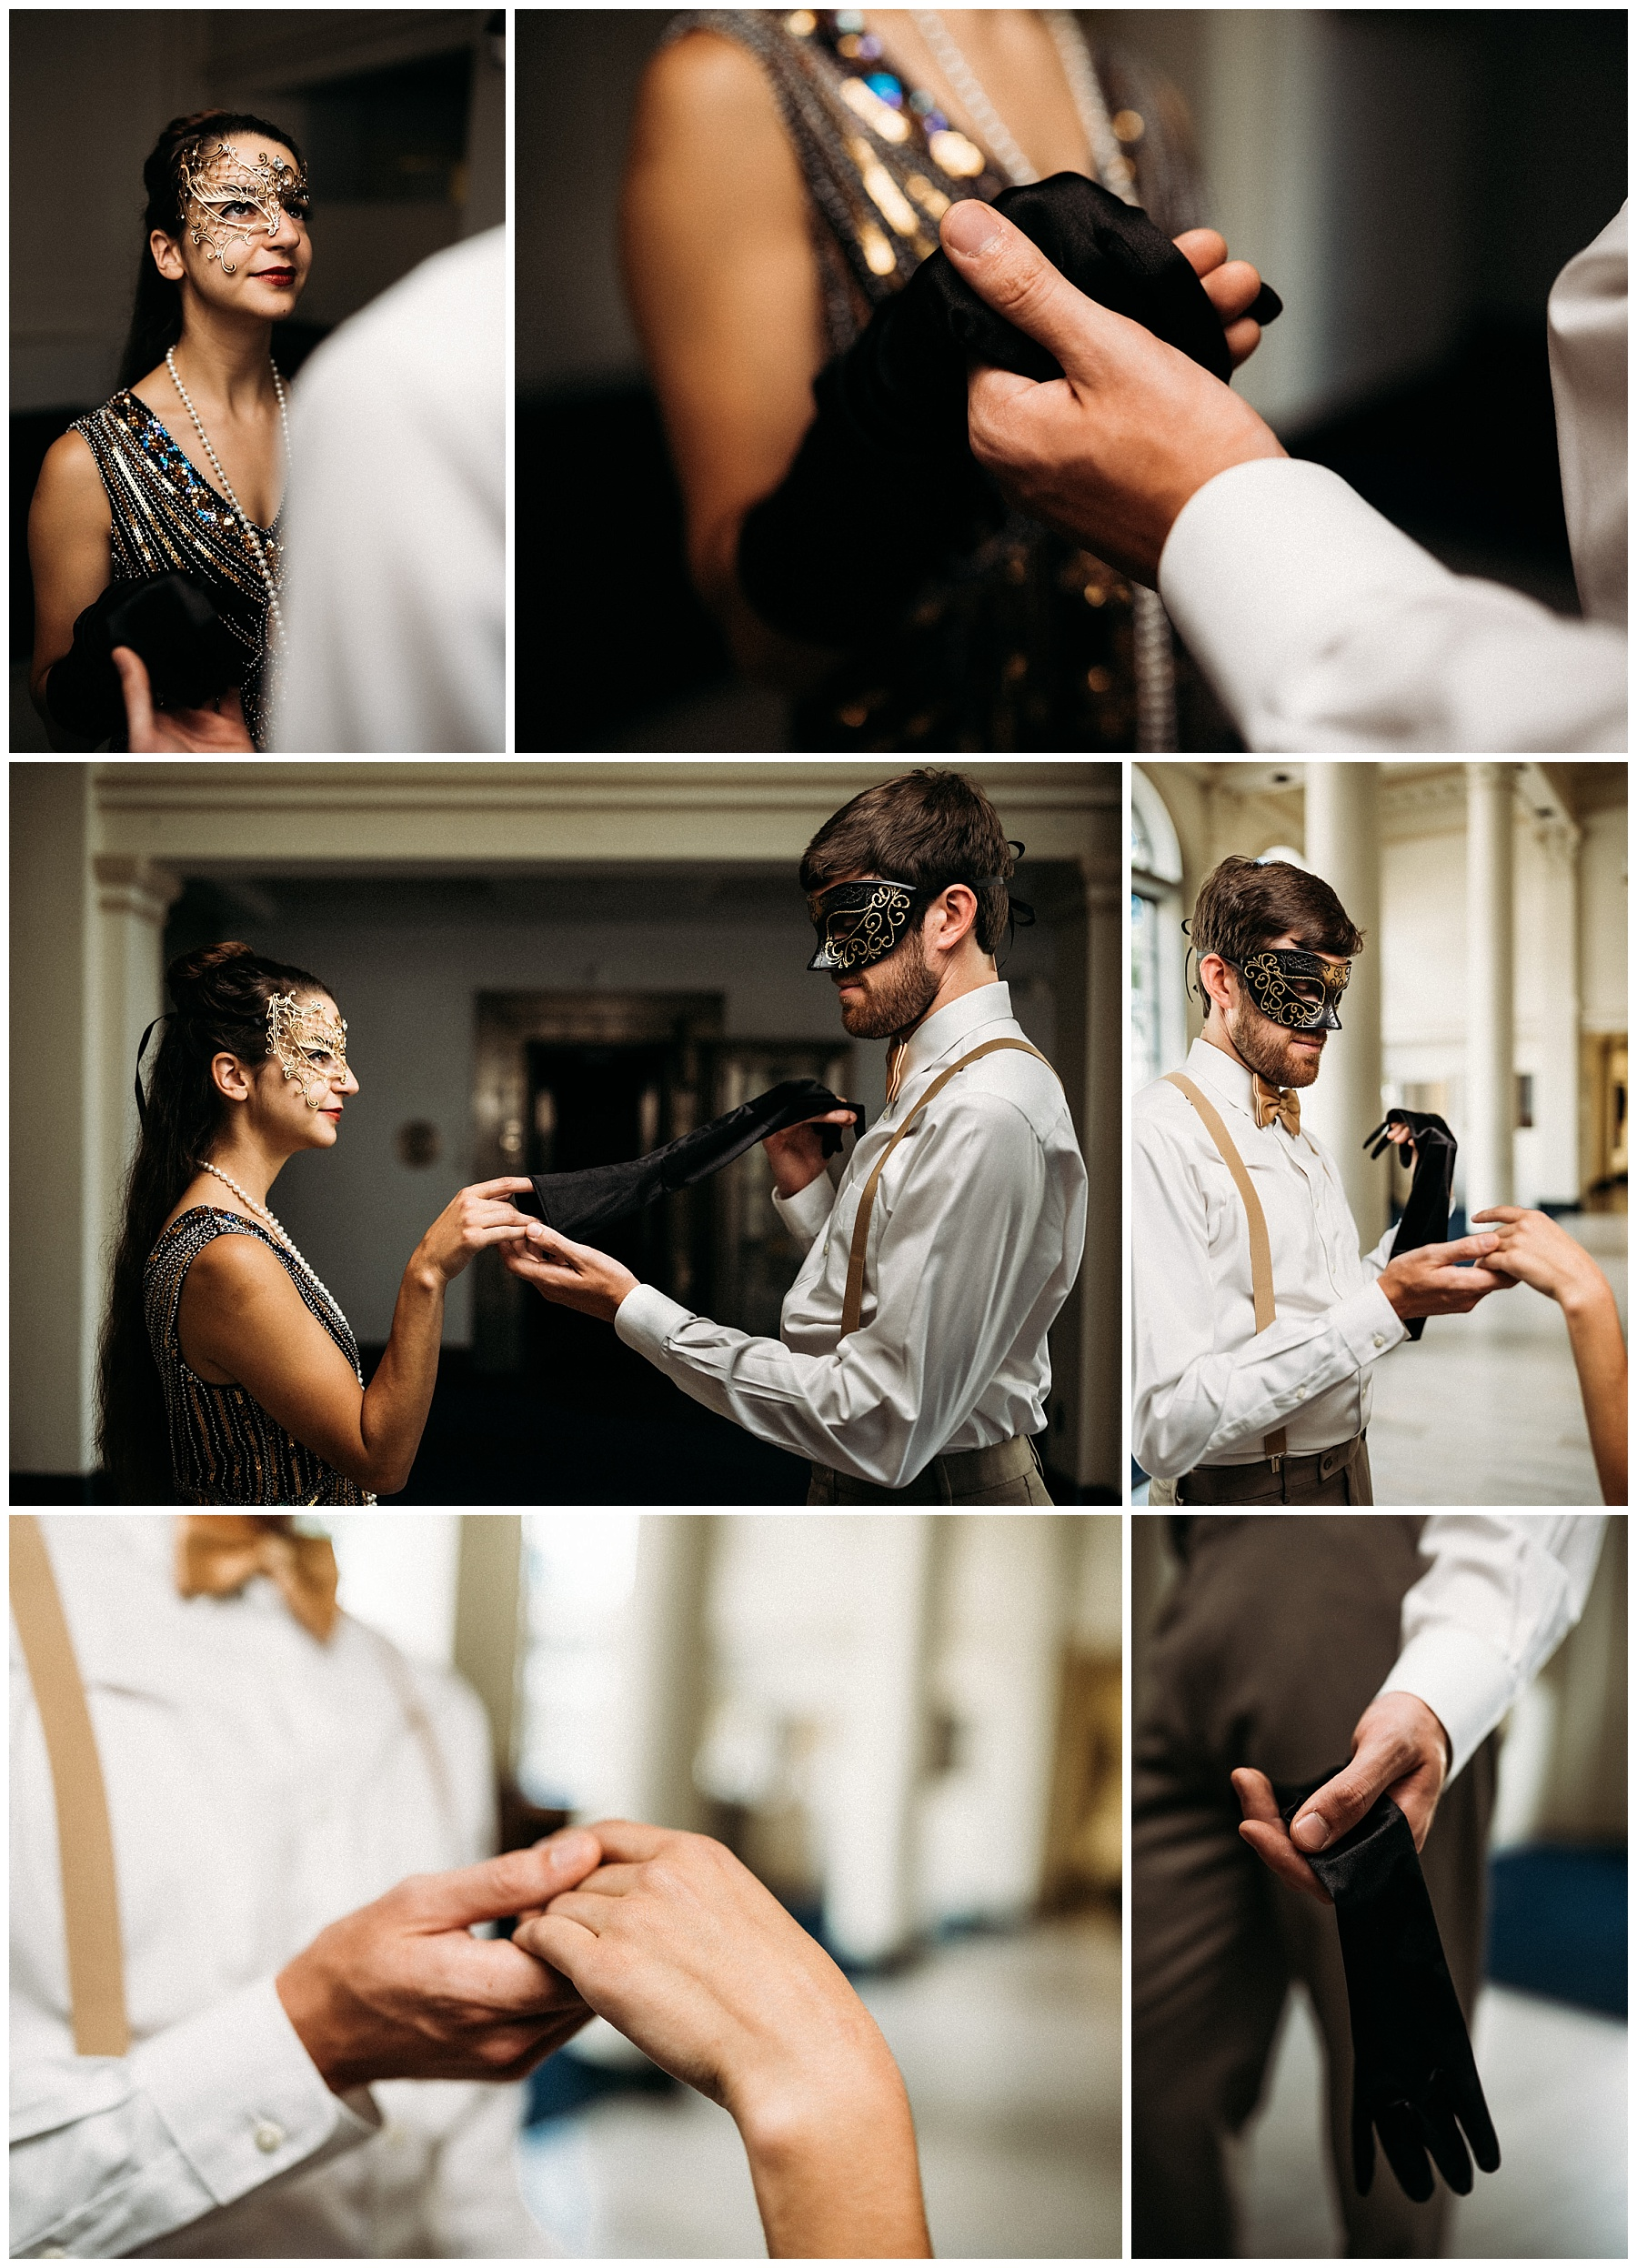 gatsby-styled-couples-shoot-final-g-web-20190707-0029_CCS-1.jpg